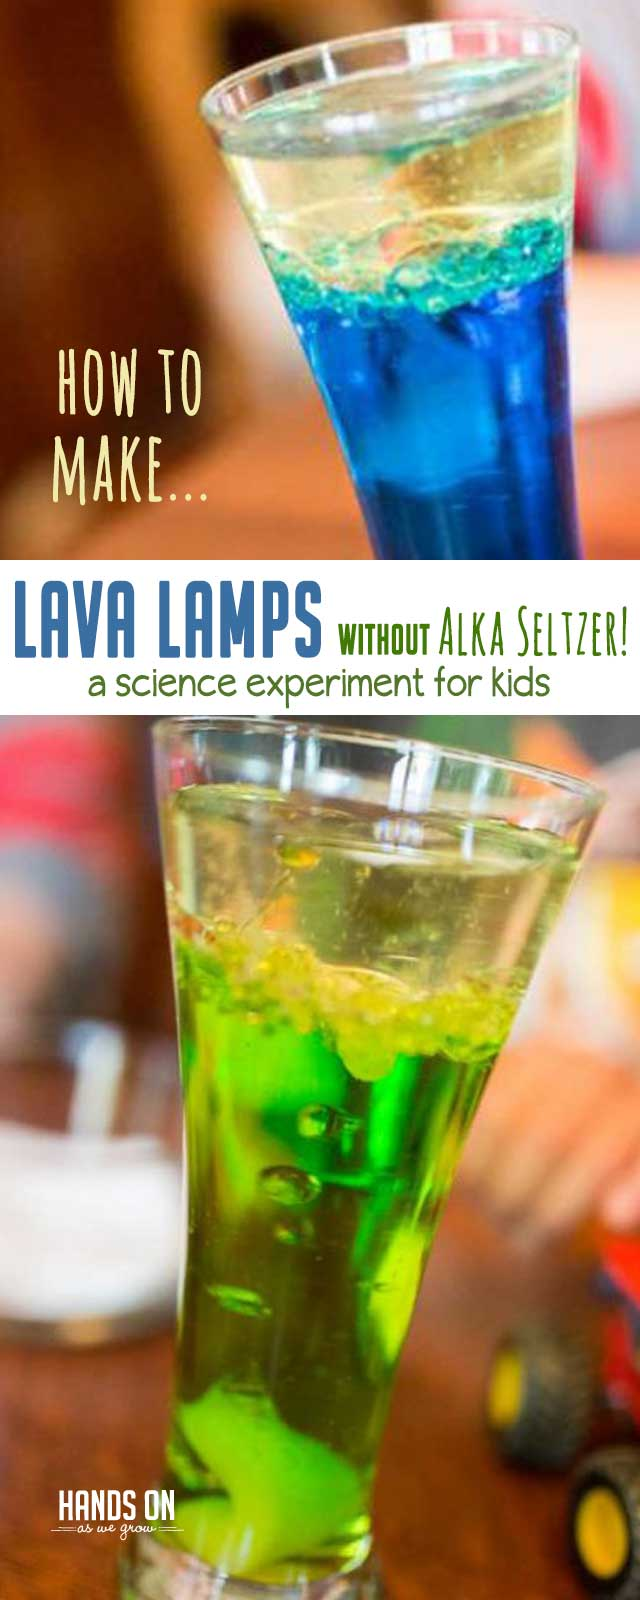 How to Make a Lava Lamp Without Alka Seltzer Make a lava